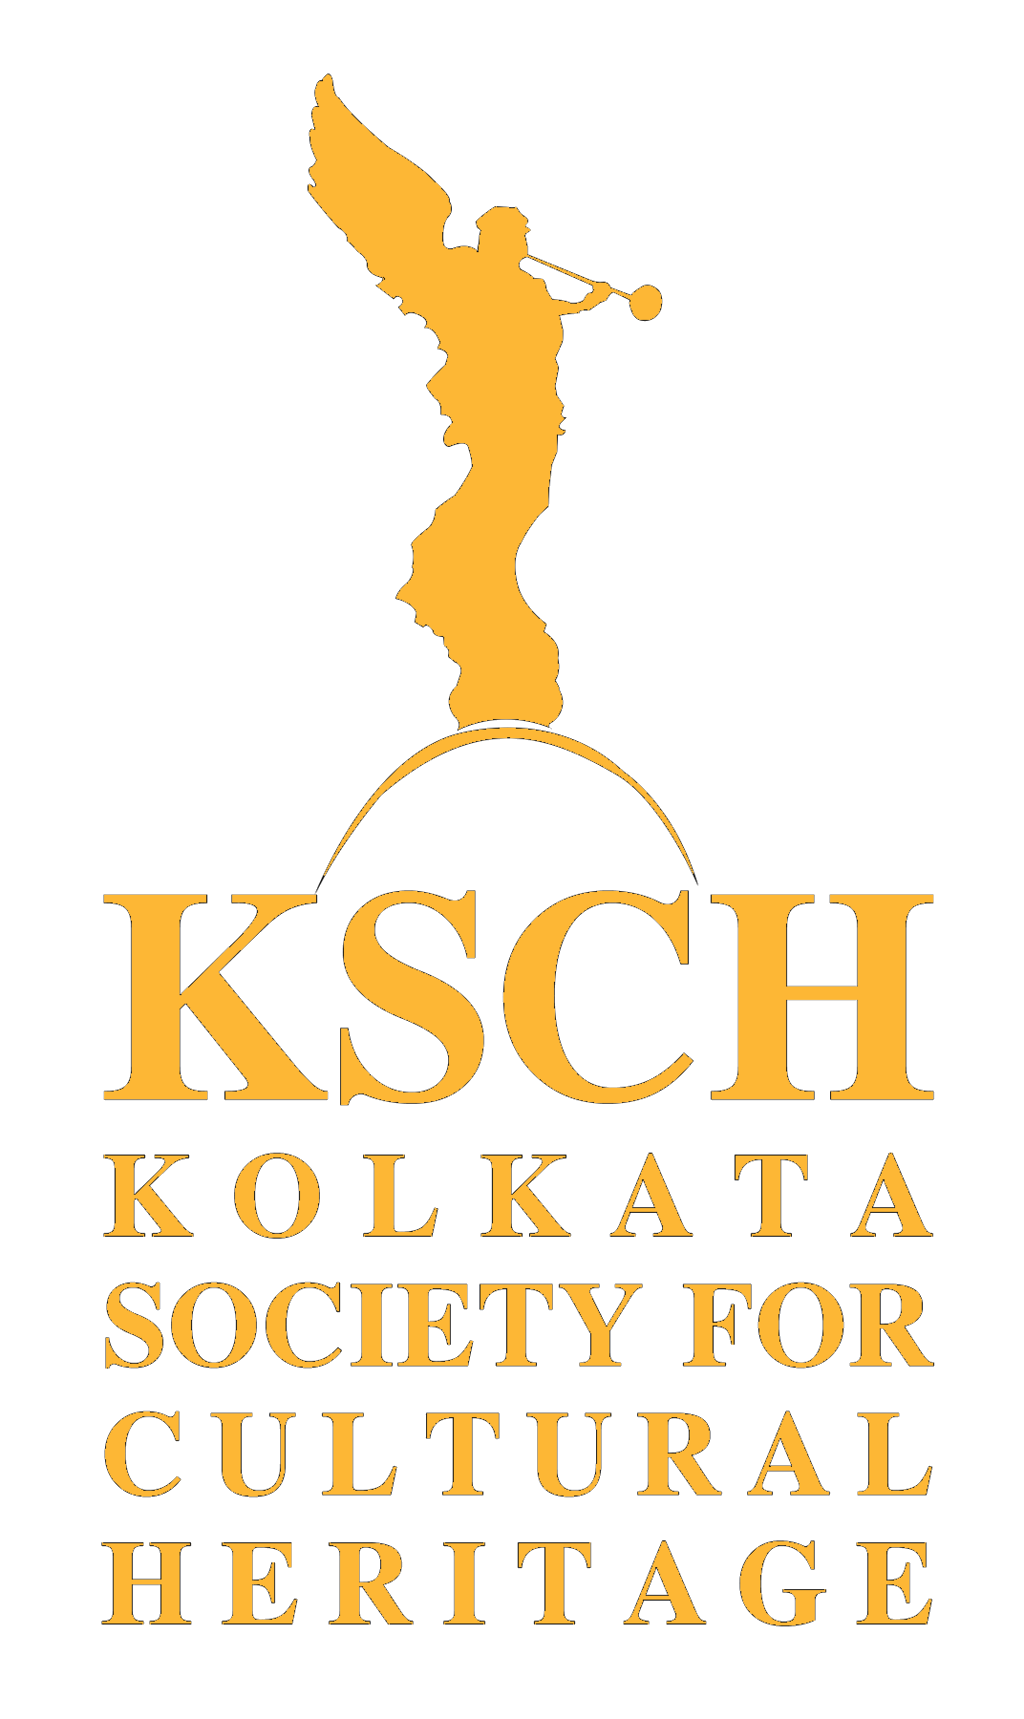 Kolkata Society for Cultural Heritage